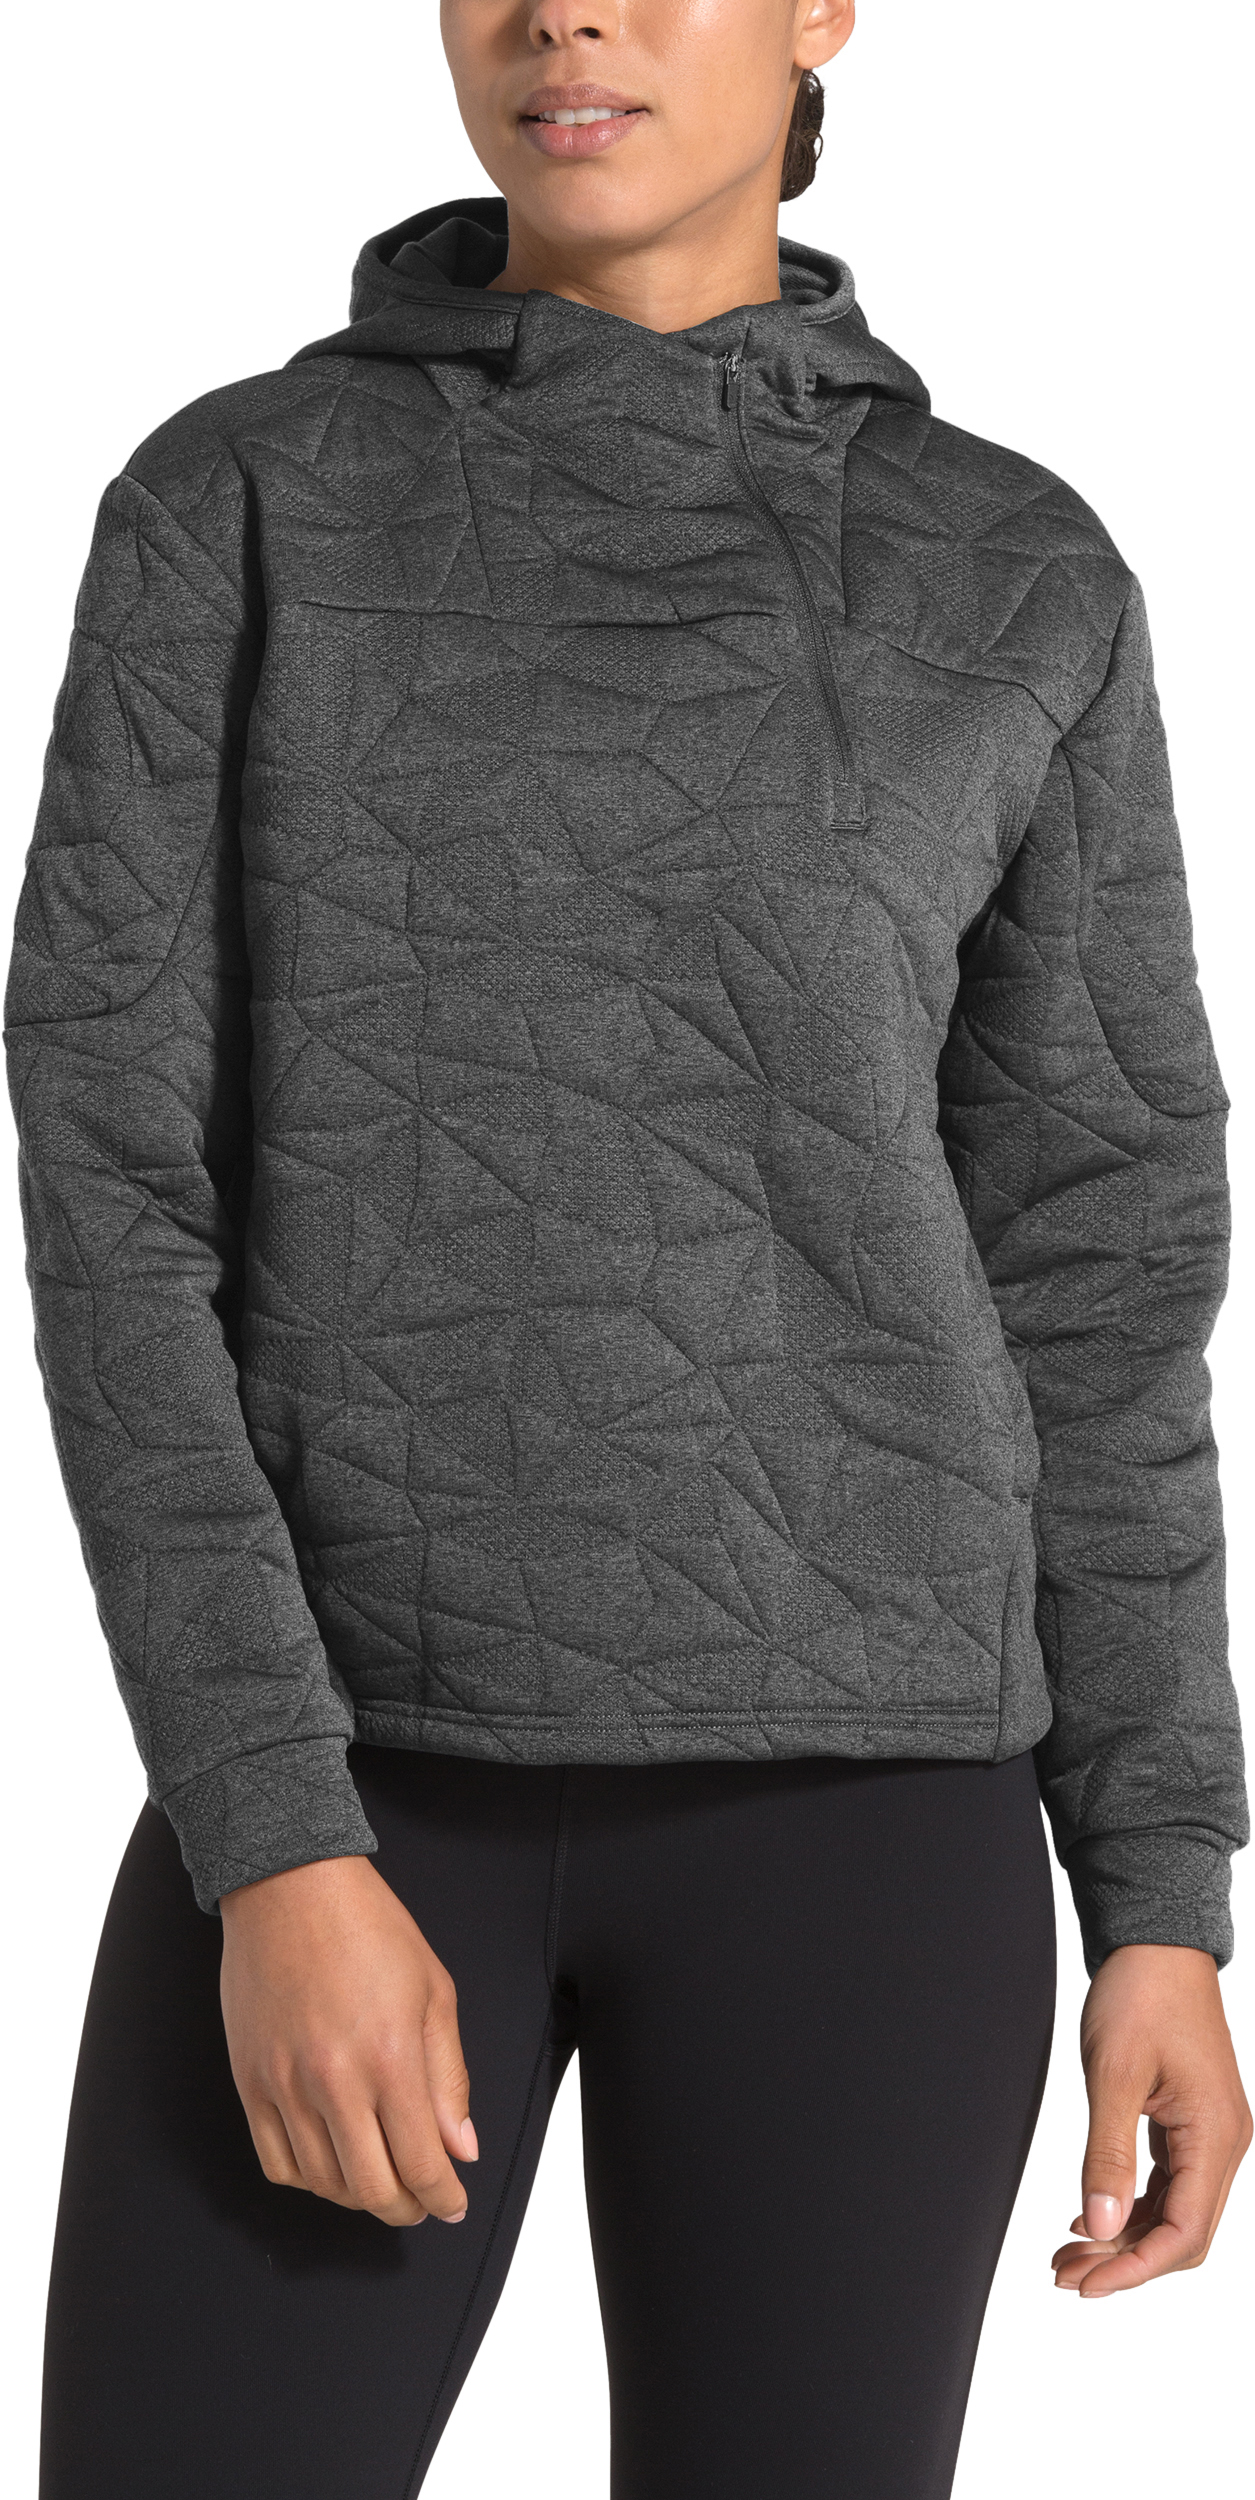 25bafdf58 The North Face Get Out There Pullover - Women's | MEC